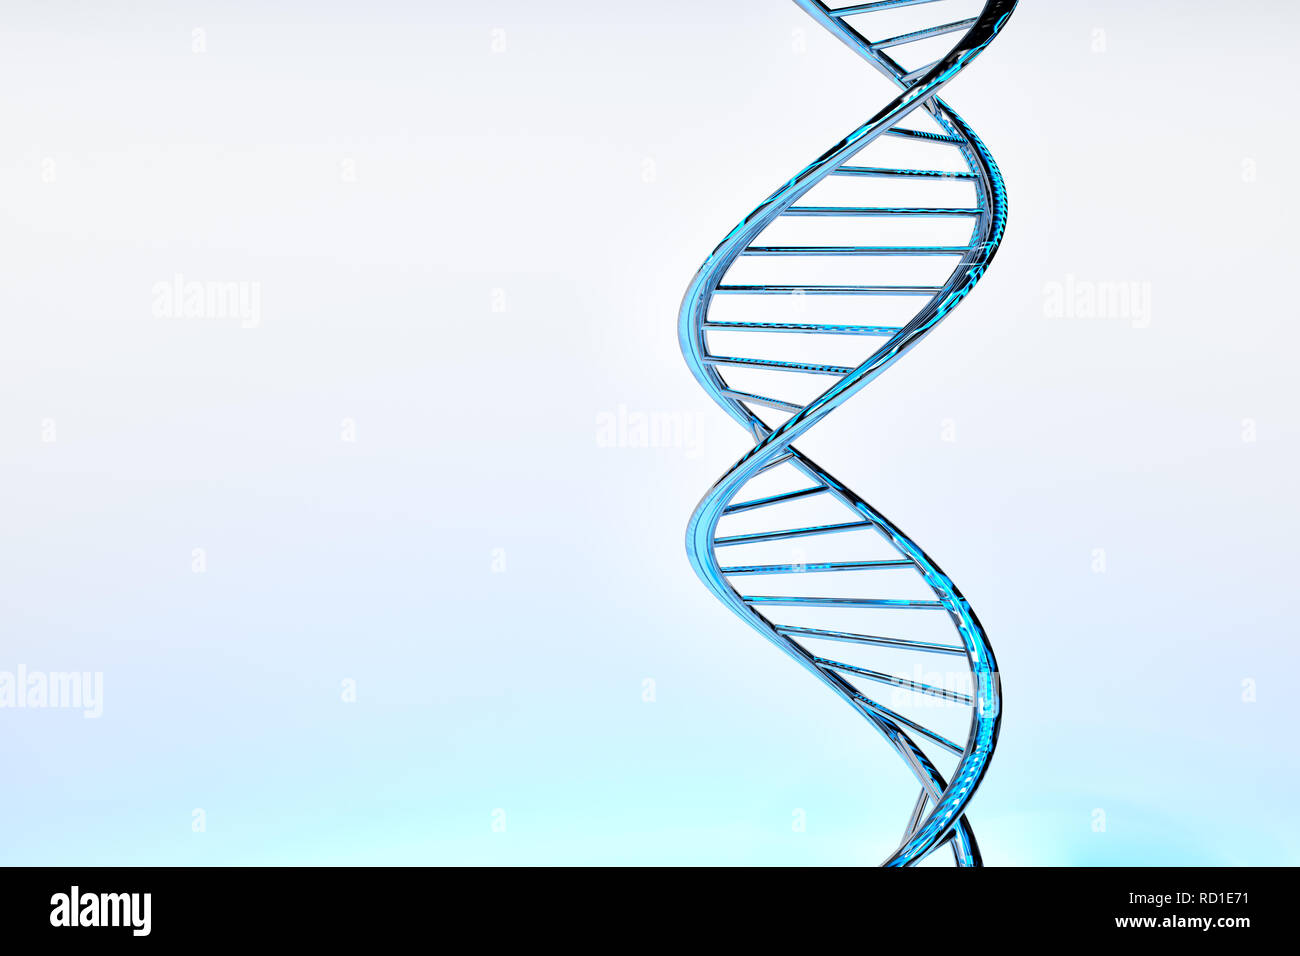 DNA double helix, blue glossy material, white gradient background - Stock Image